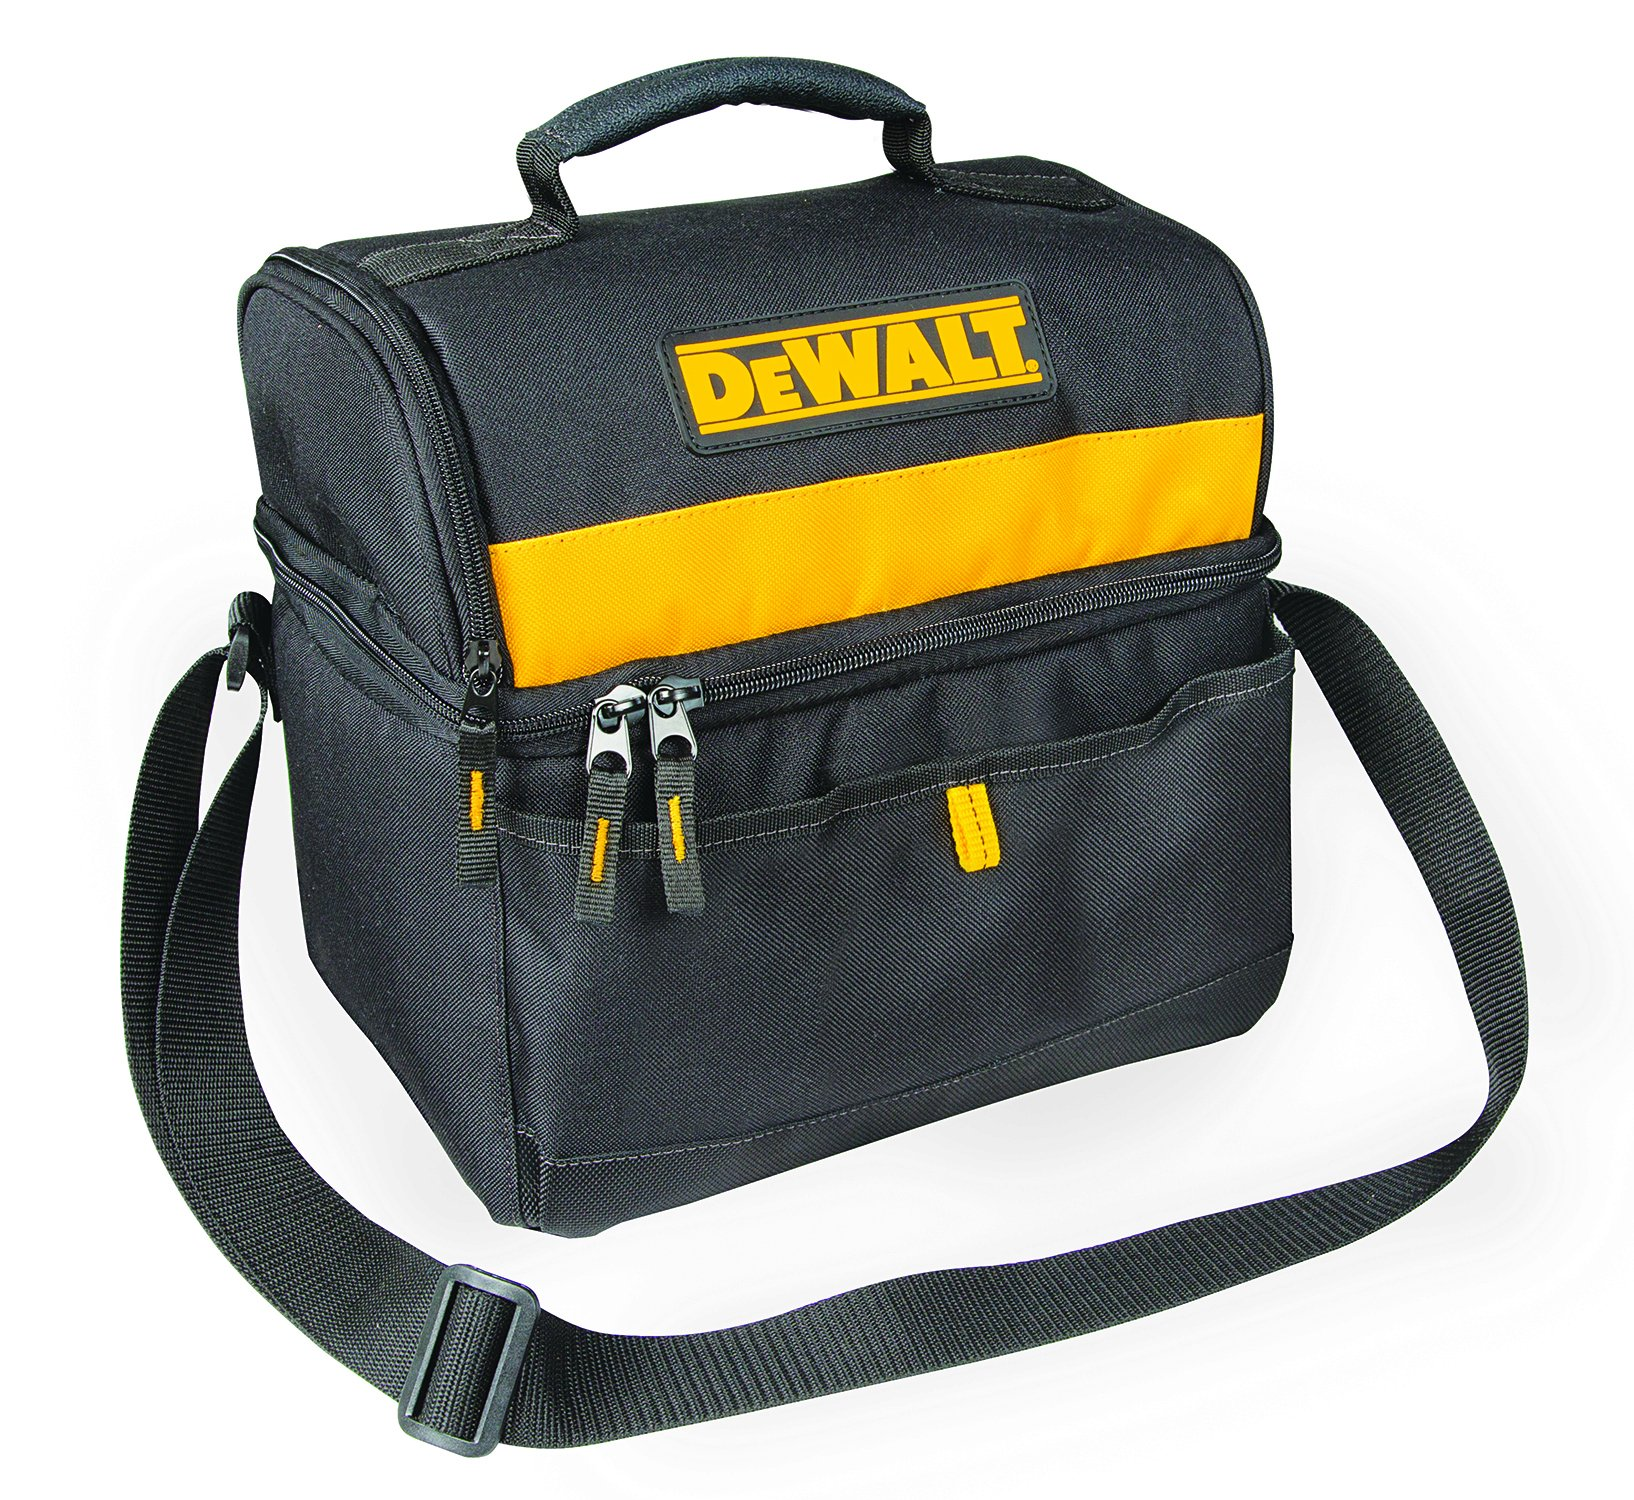 DEWALT DG5540 Cooler Tool Bag, 11 in. by DEWALT (Image #1)